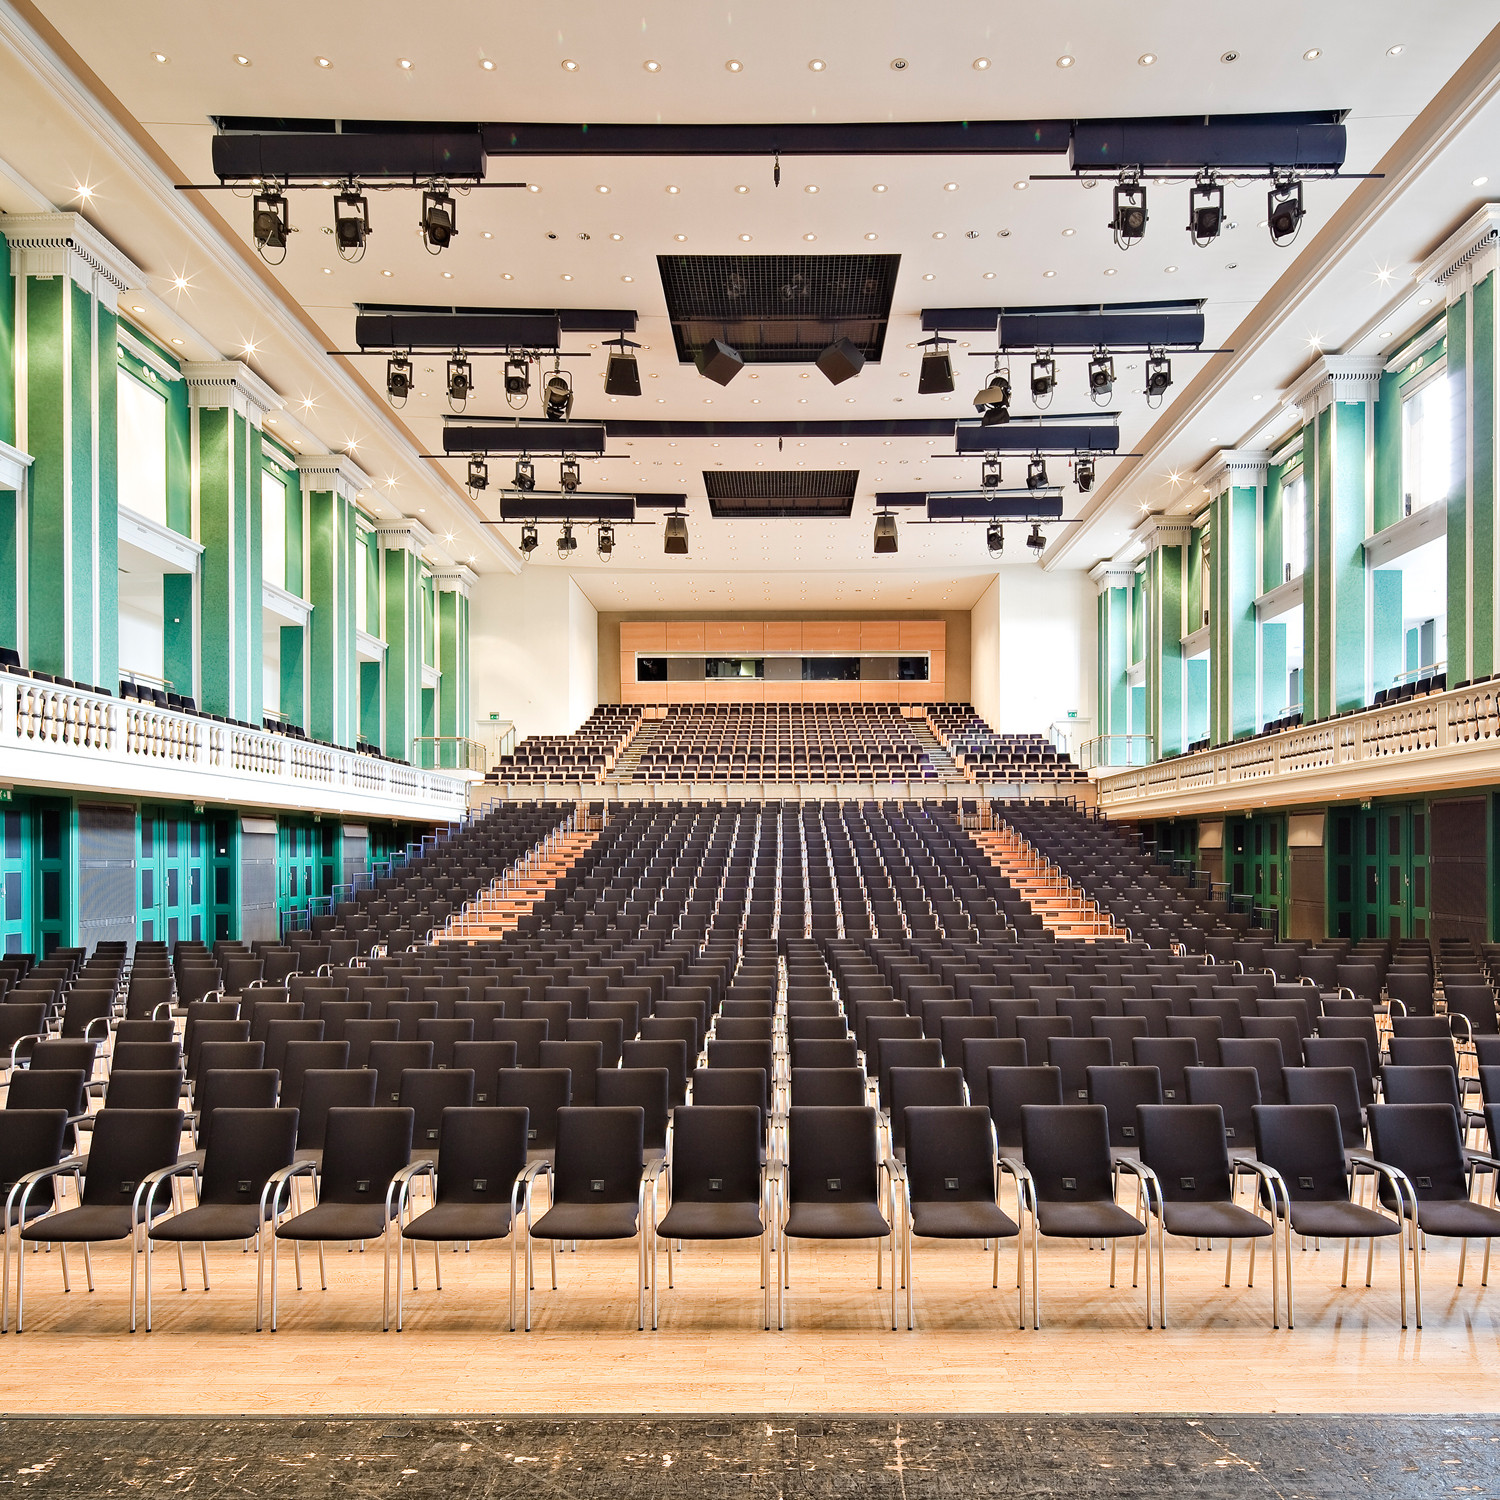 Alite Chairs in a Concert Hall